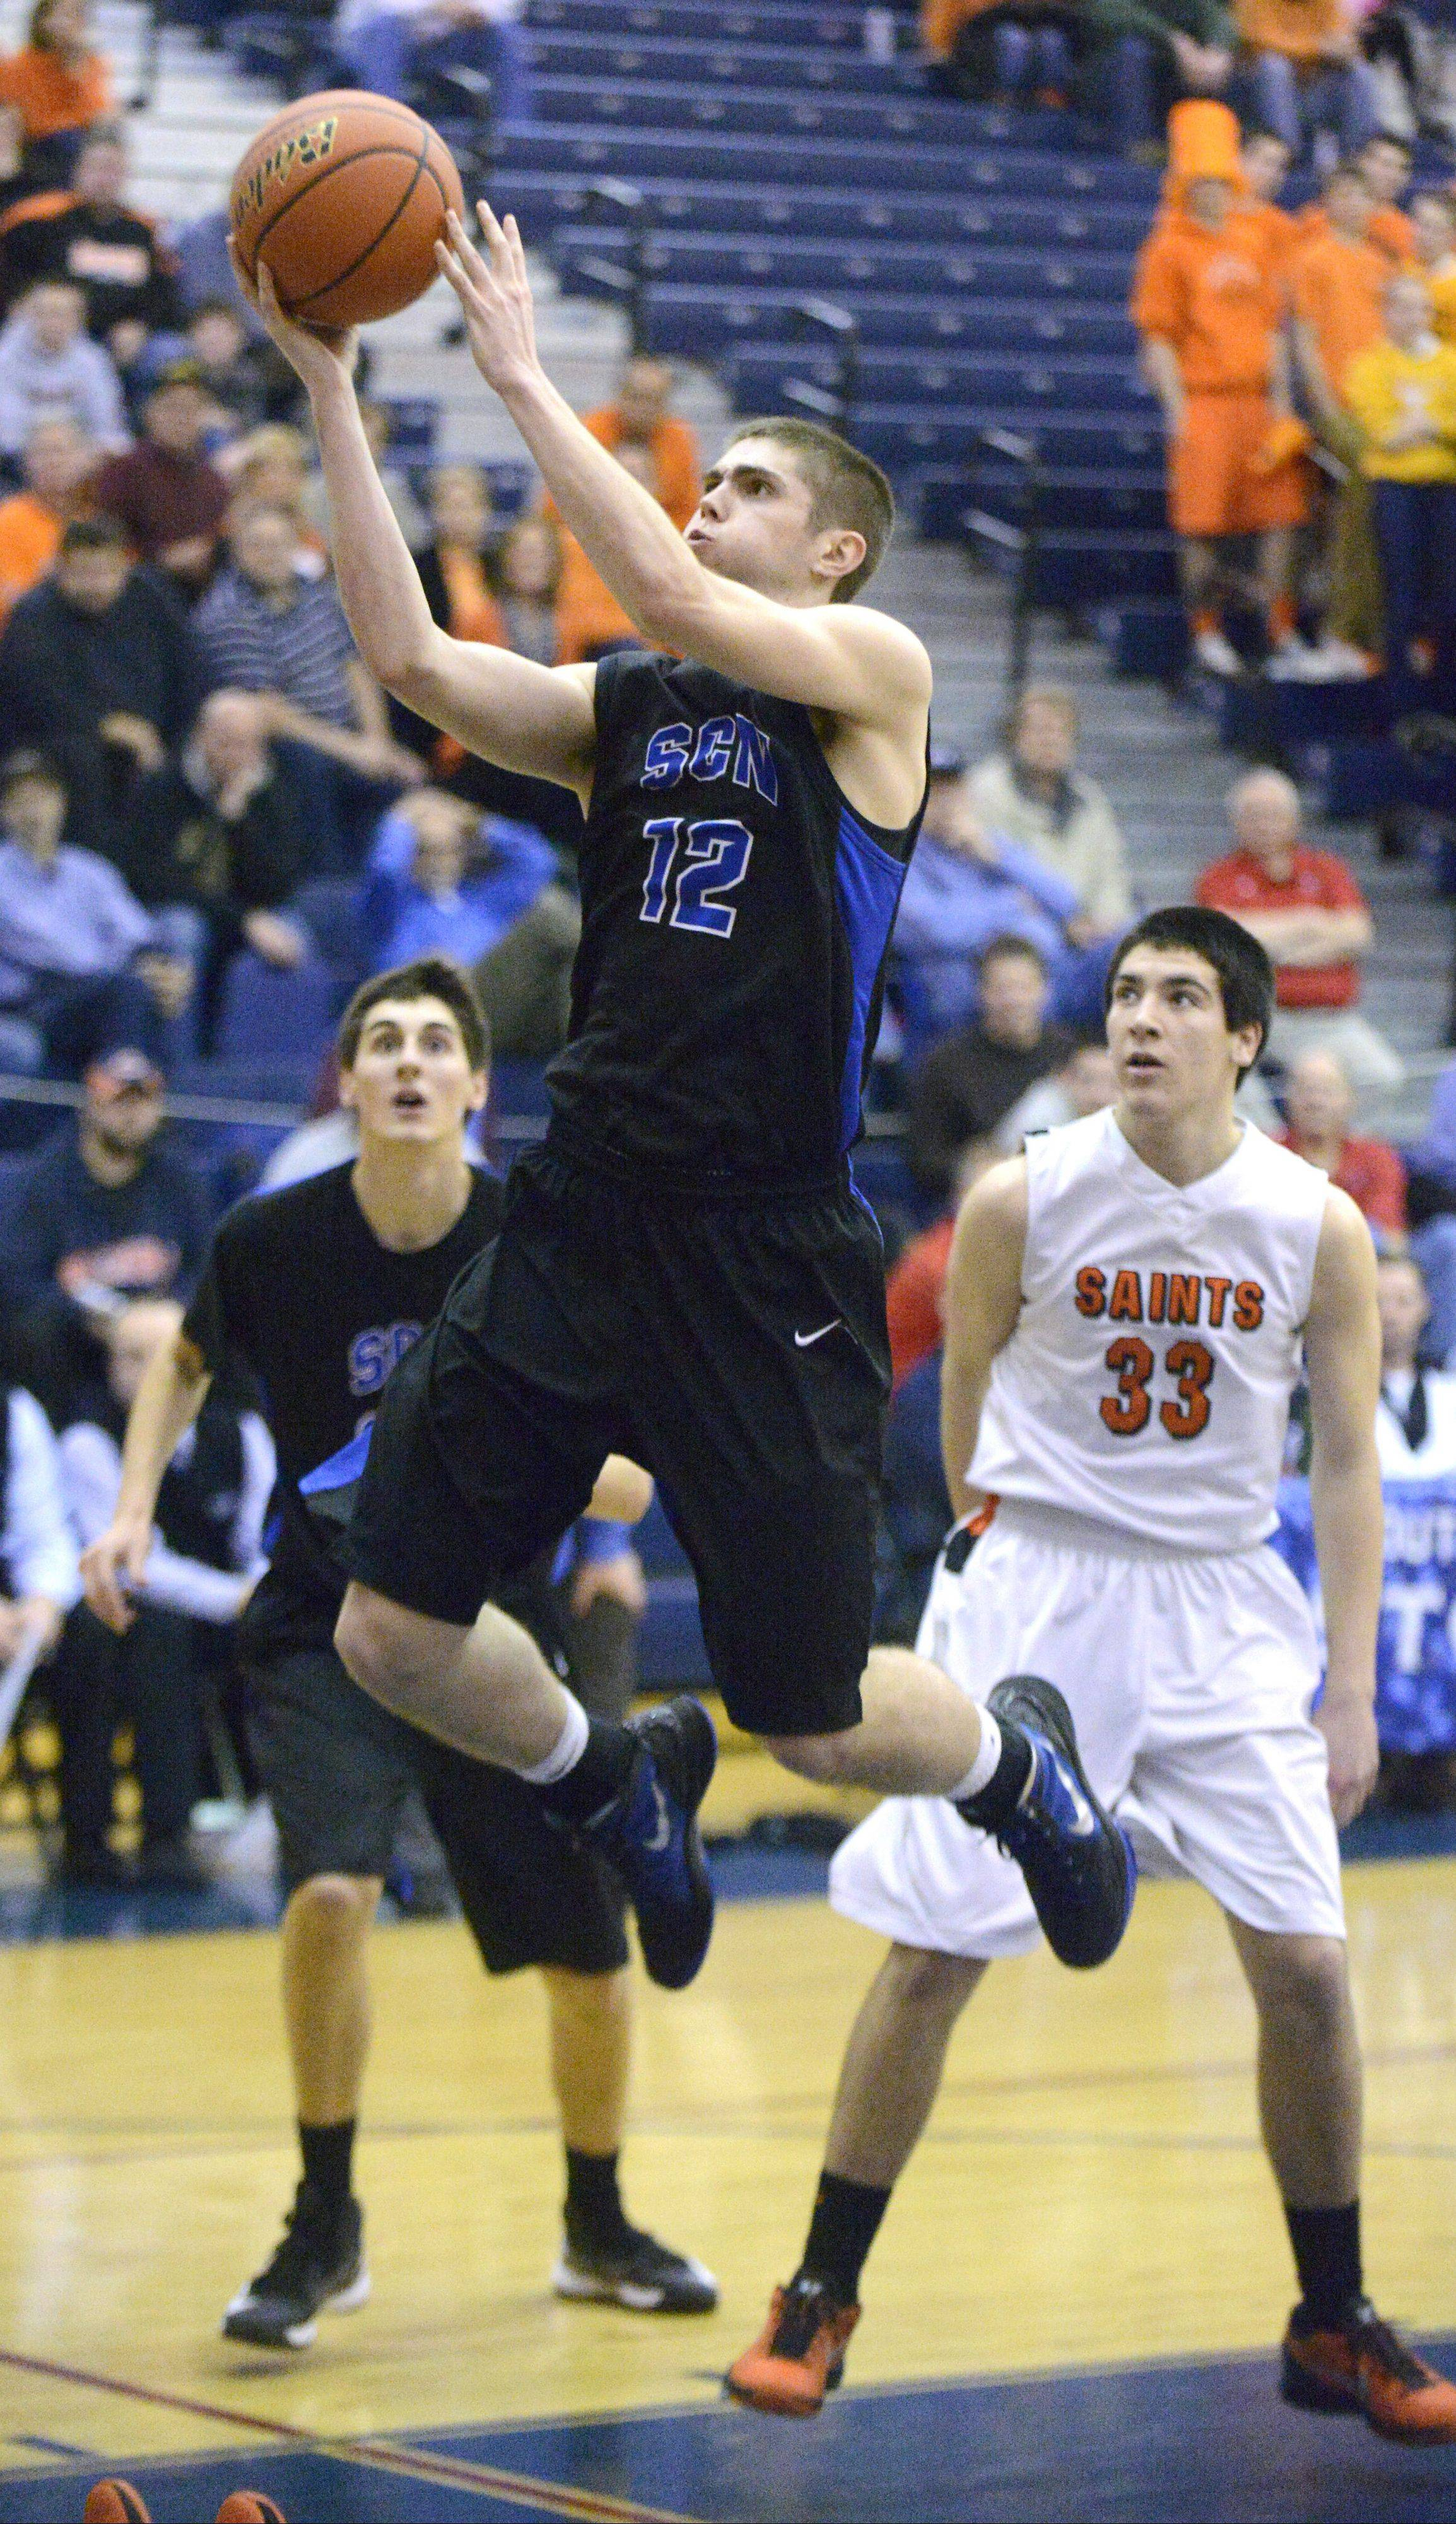 St. Charles North's Quinten Payne soars to the hoop past St. Charles East's Jake Asquini in the fourth quarter of the Class 4A South Elgin regional on Wednesday. Payne led all scorers with 26 points.